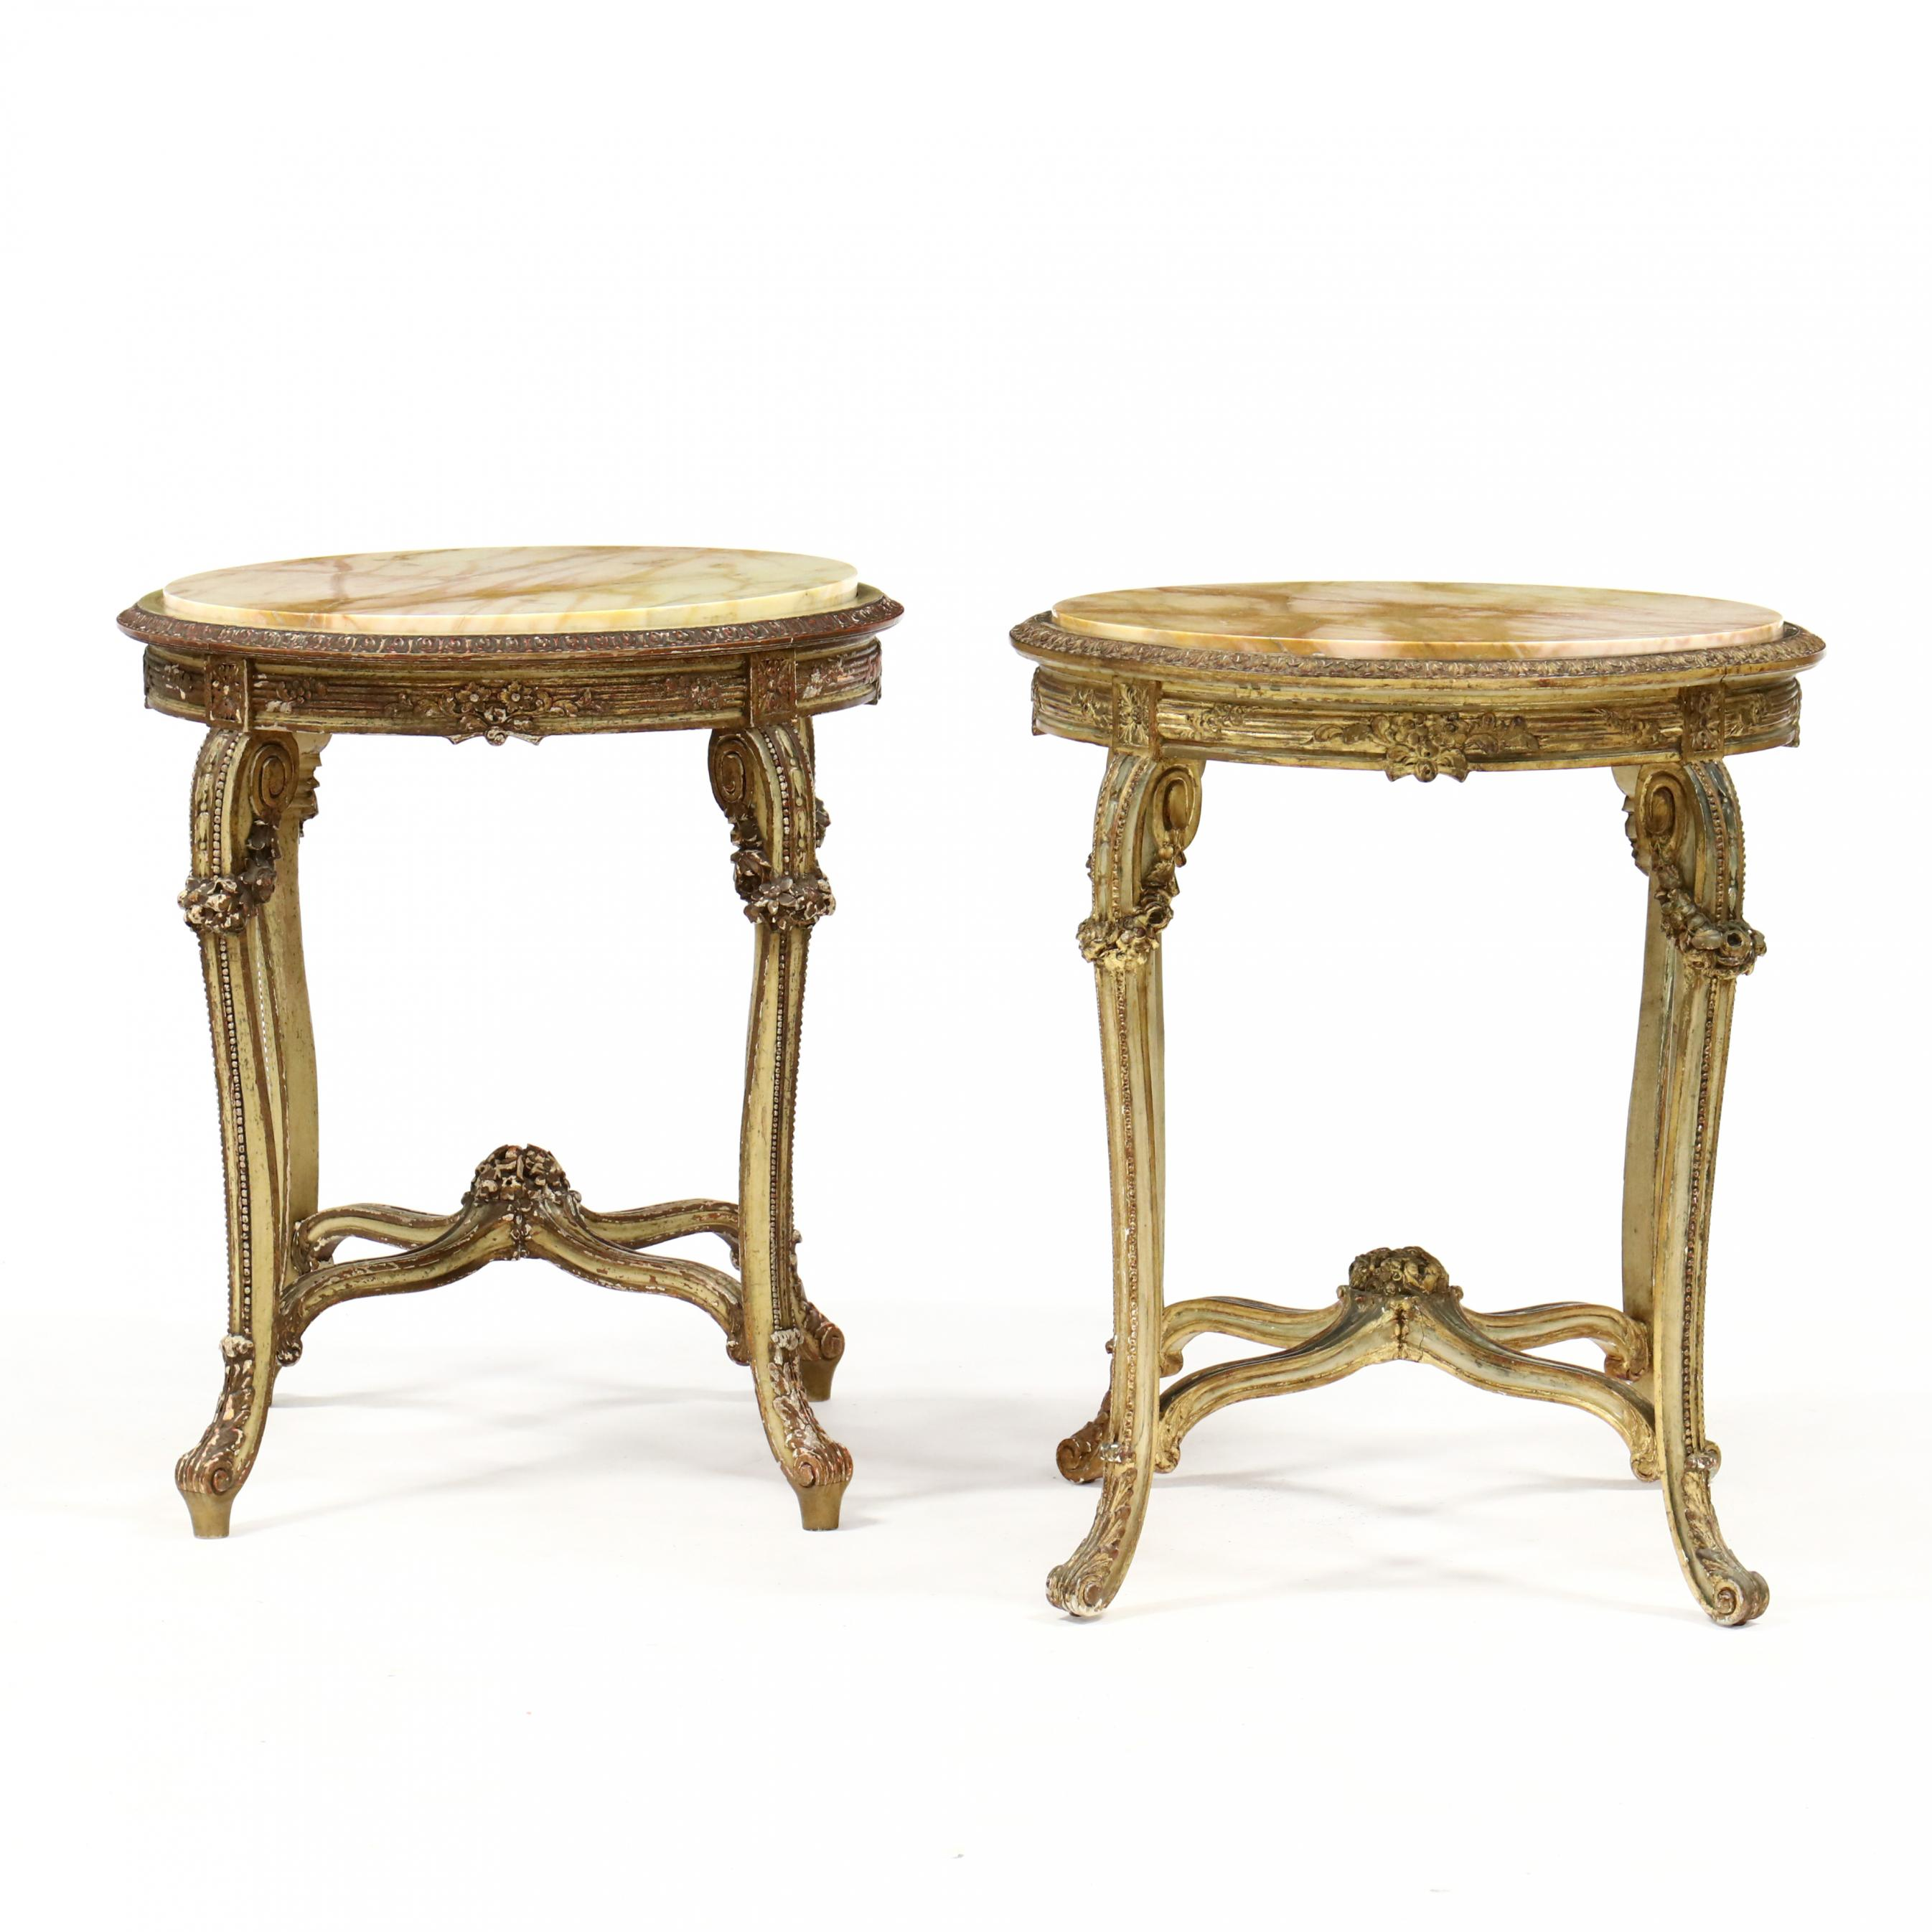 pair-of-louis-xv-style-carved-and-painted-marble-top-tables